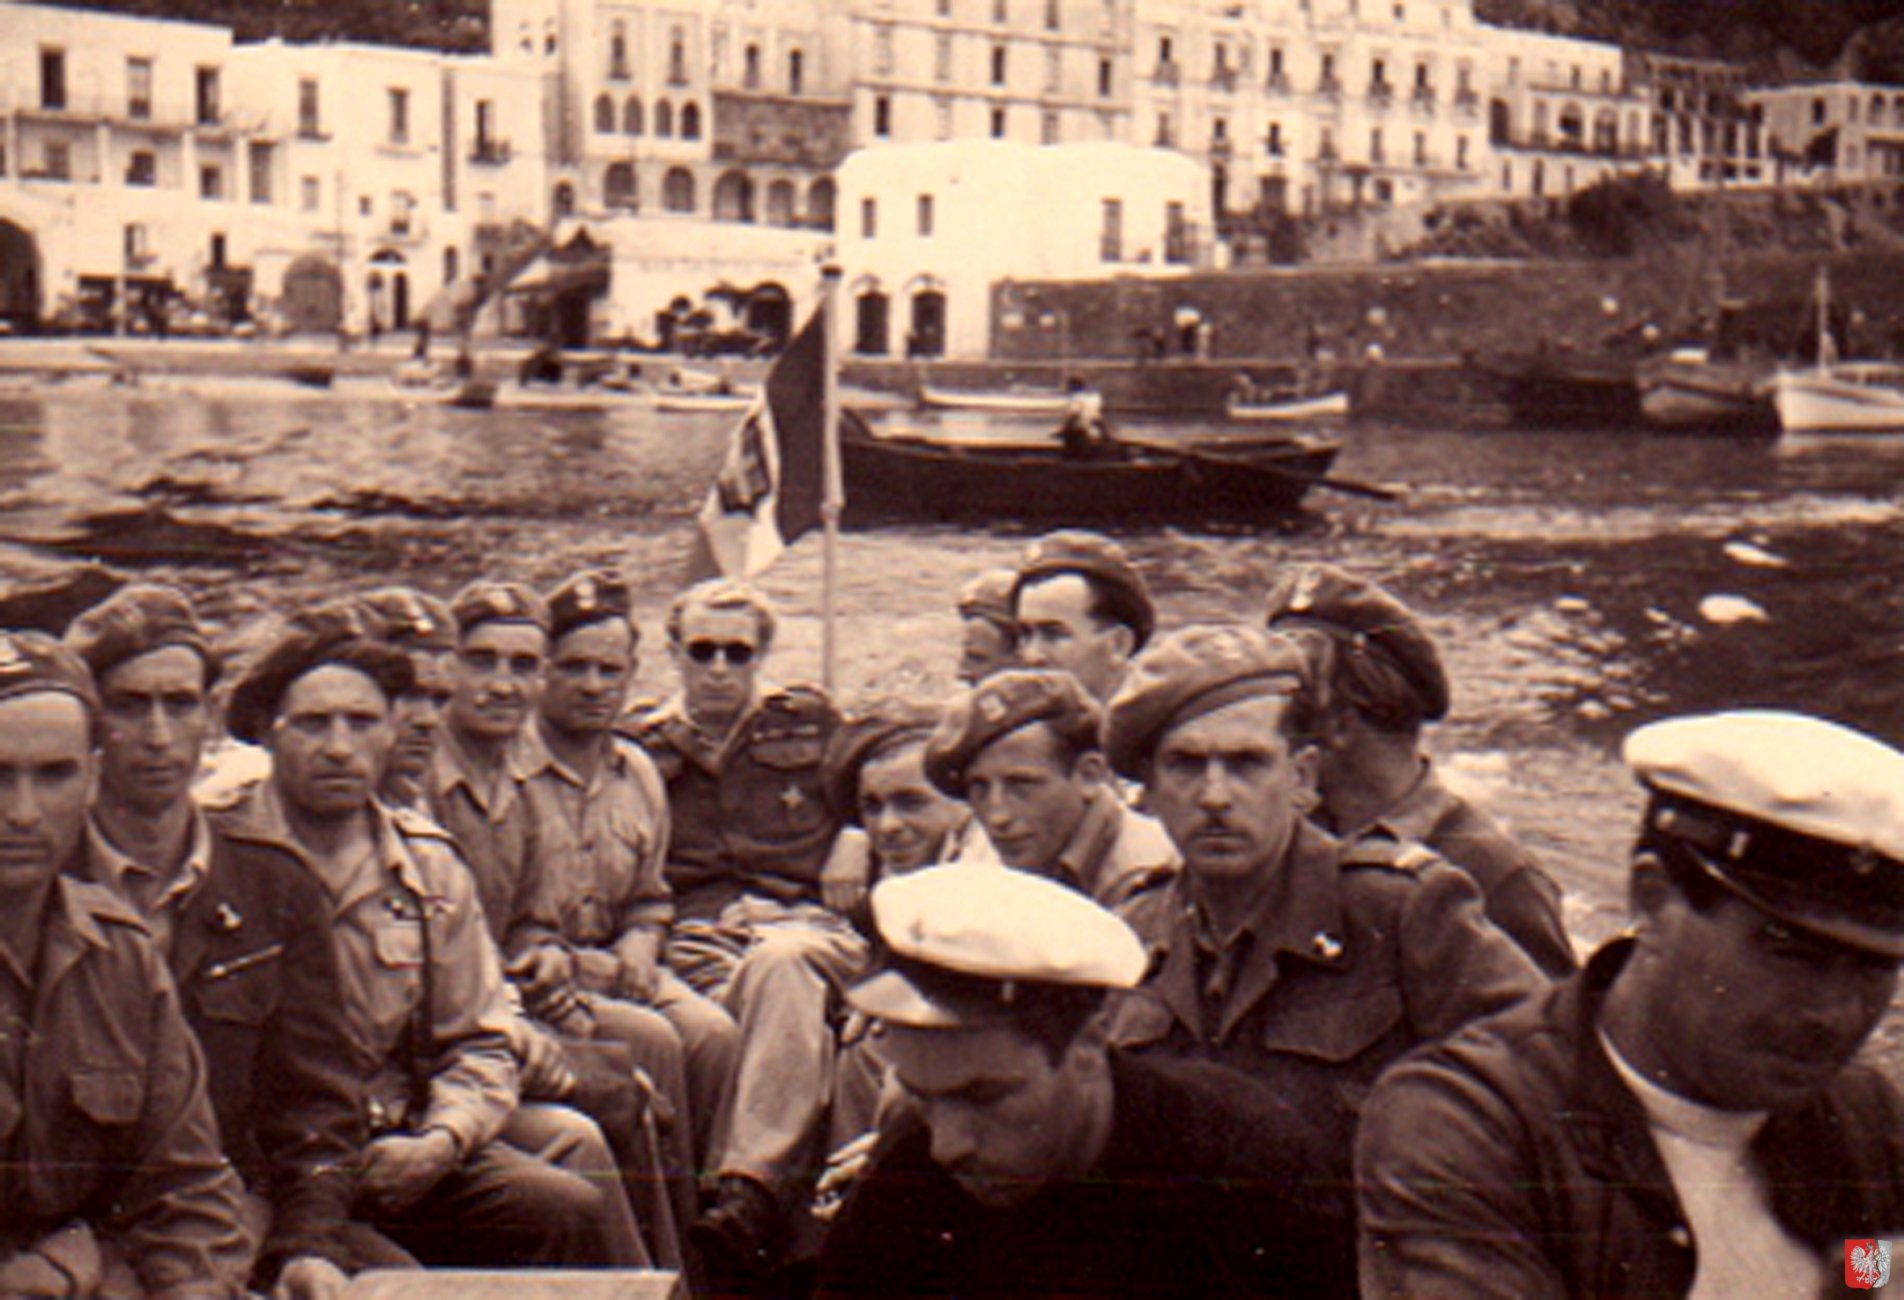 Visiting-Island-of-Capri-2-1945